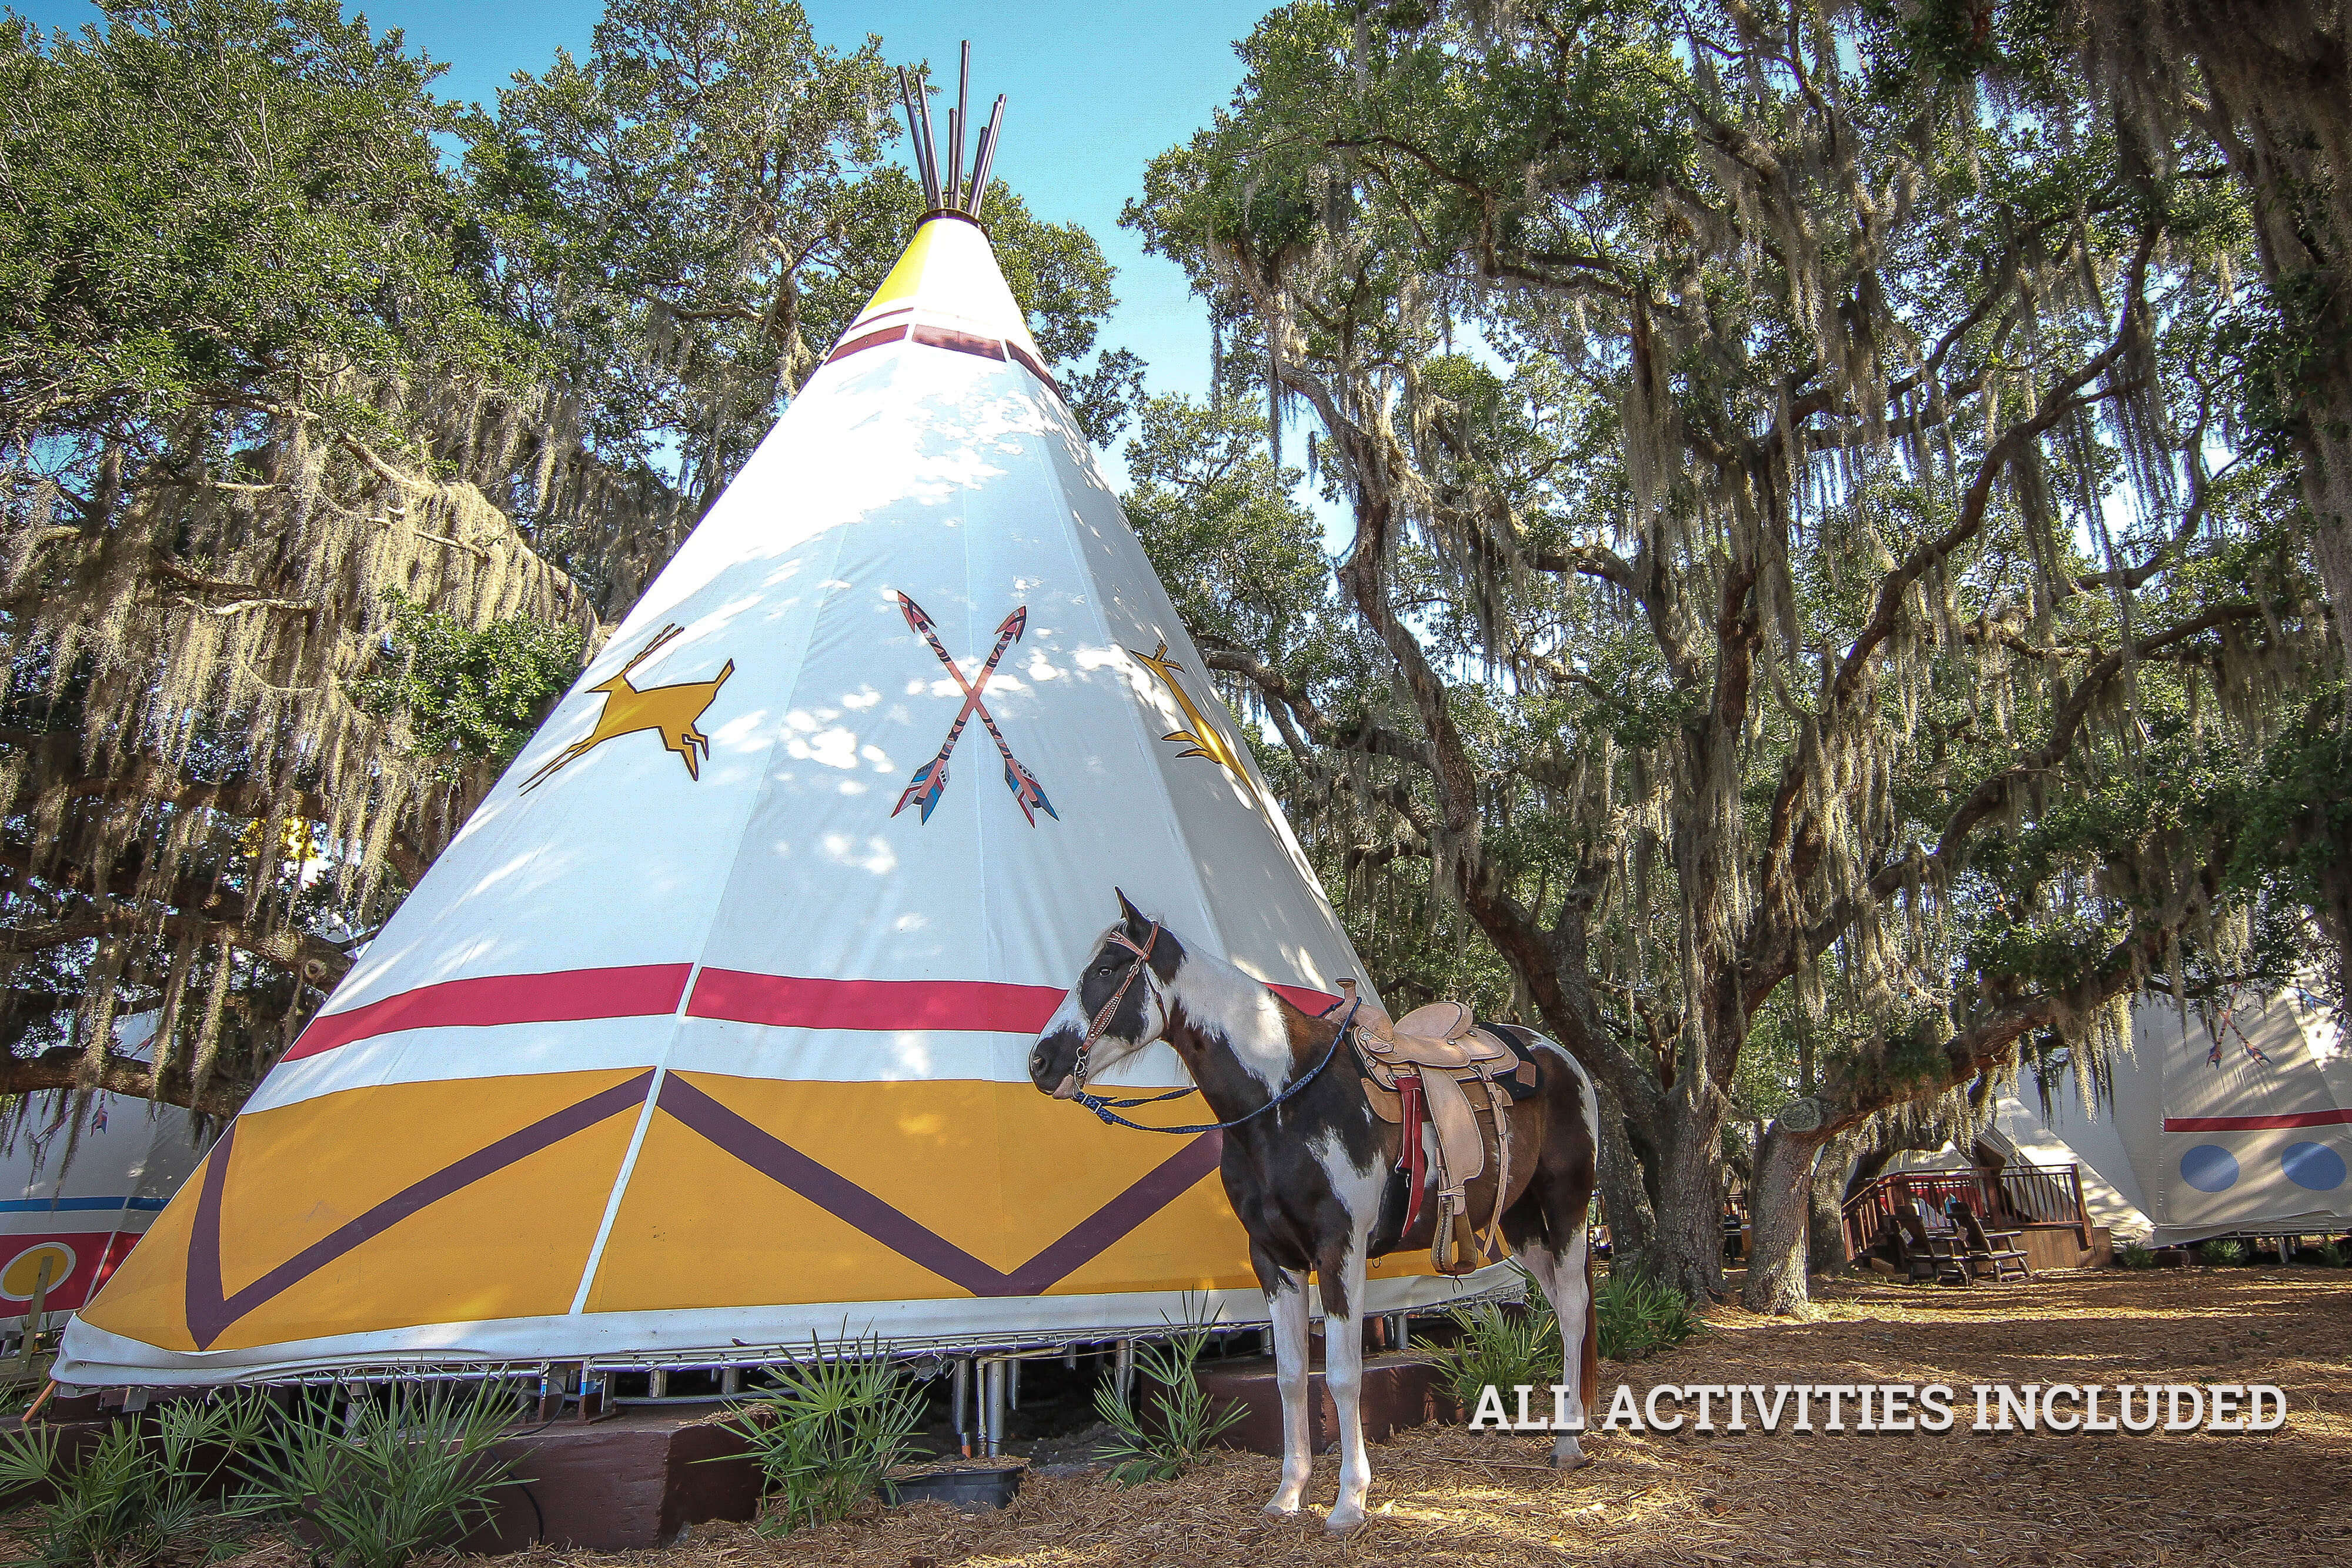 Horse Outside Luxe Teepees for Glamping |  Westgate River Ranch Resort & Rodeo | Westgate Resorts